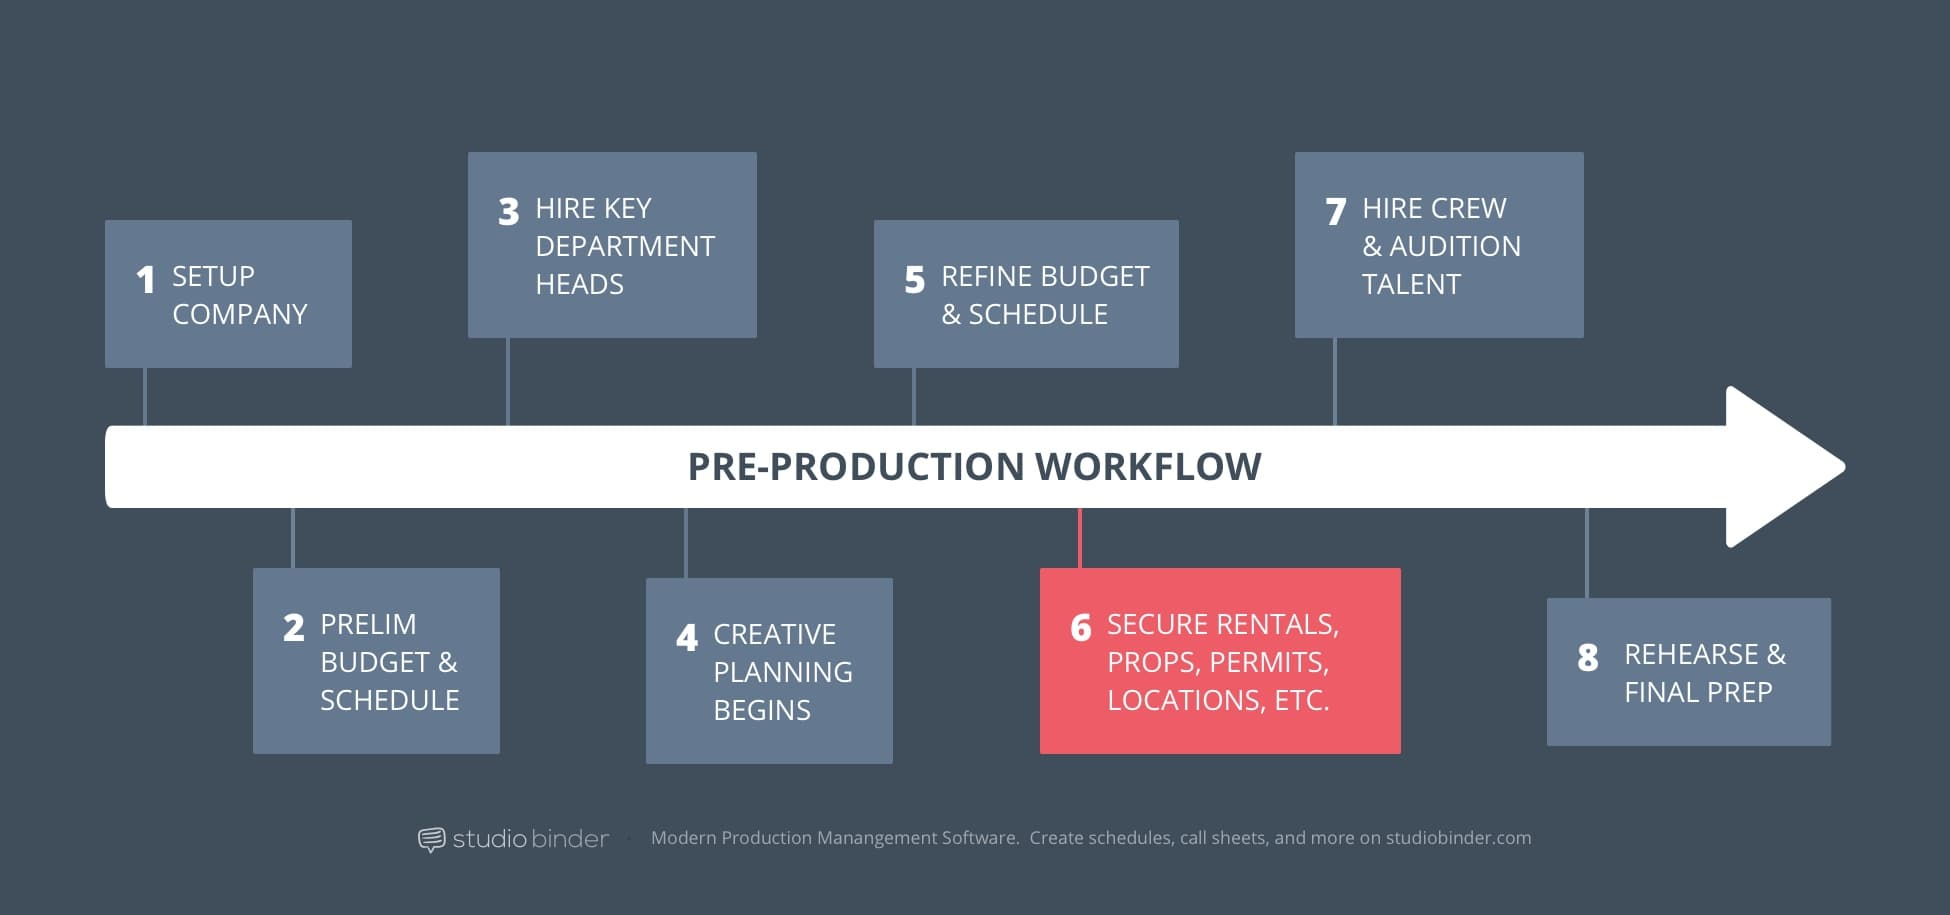 6 - StudioBinder Pre-Production Workflow - Secure Locations